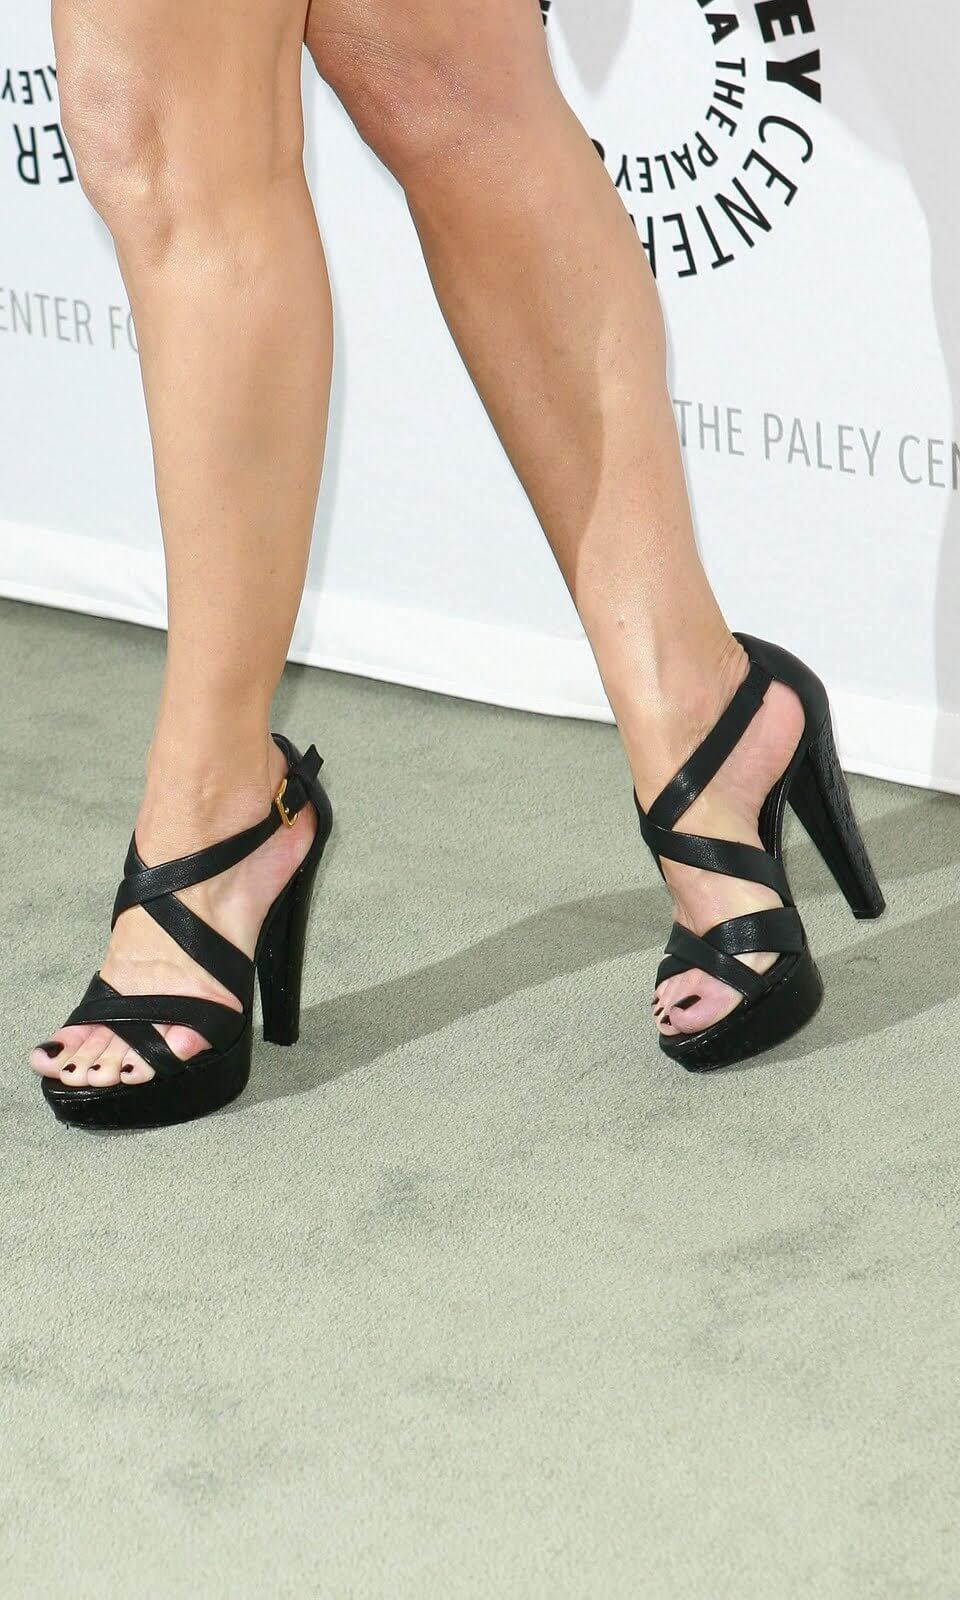 49 sexy pictures of Patricia Heaton Feet will make you melt